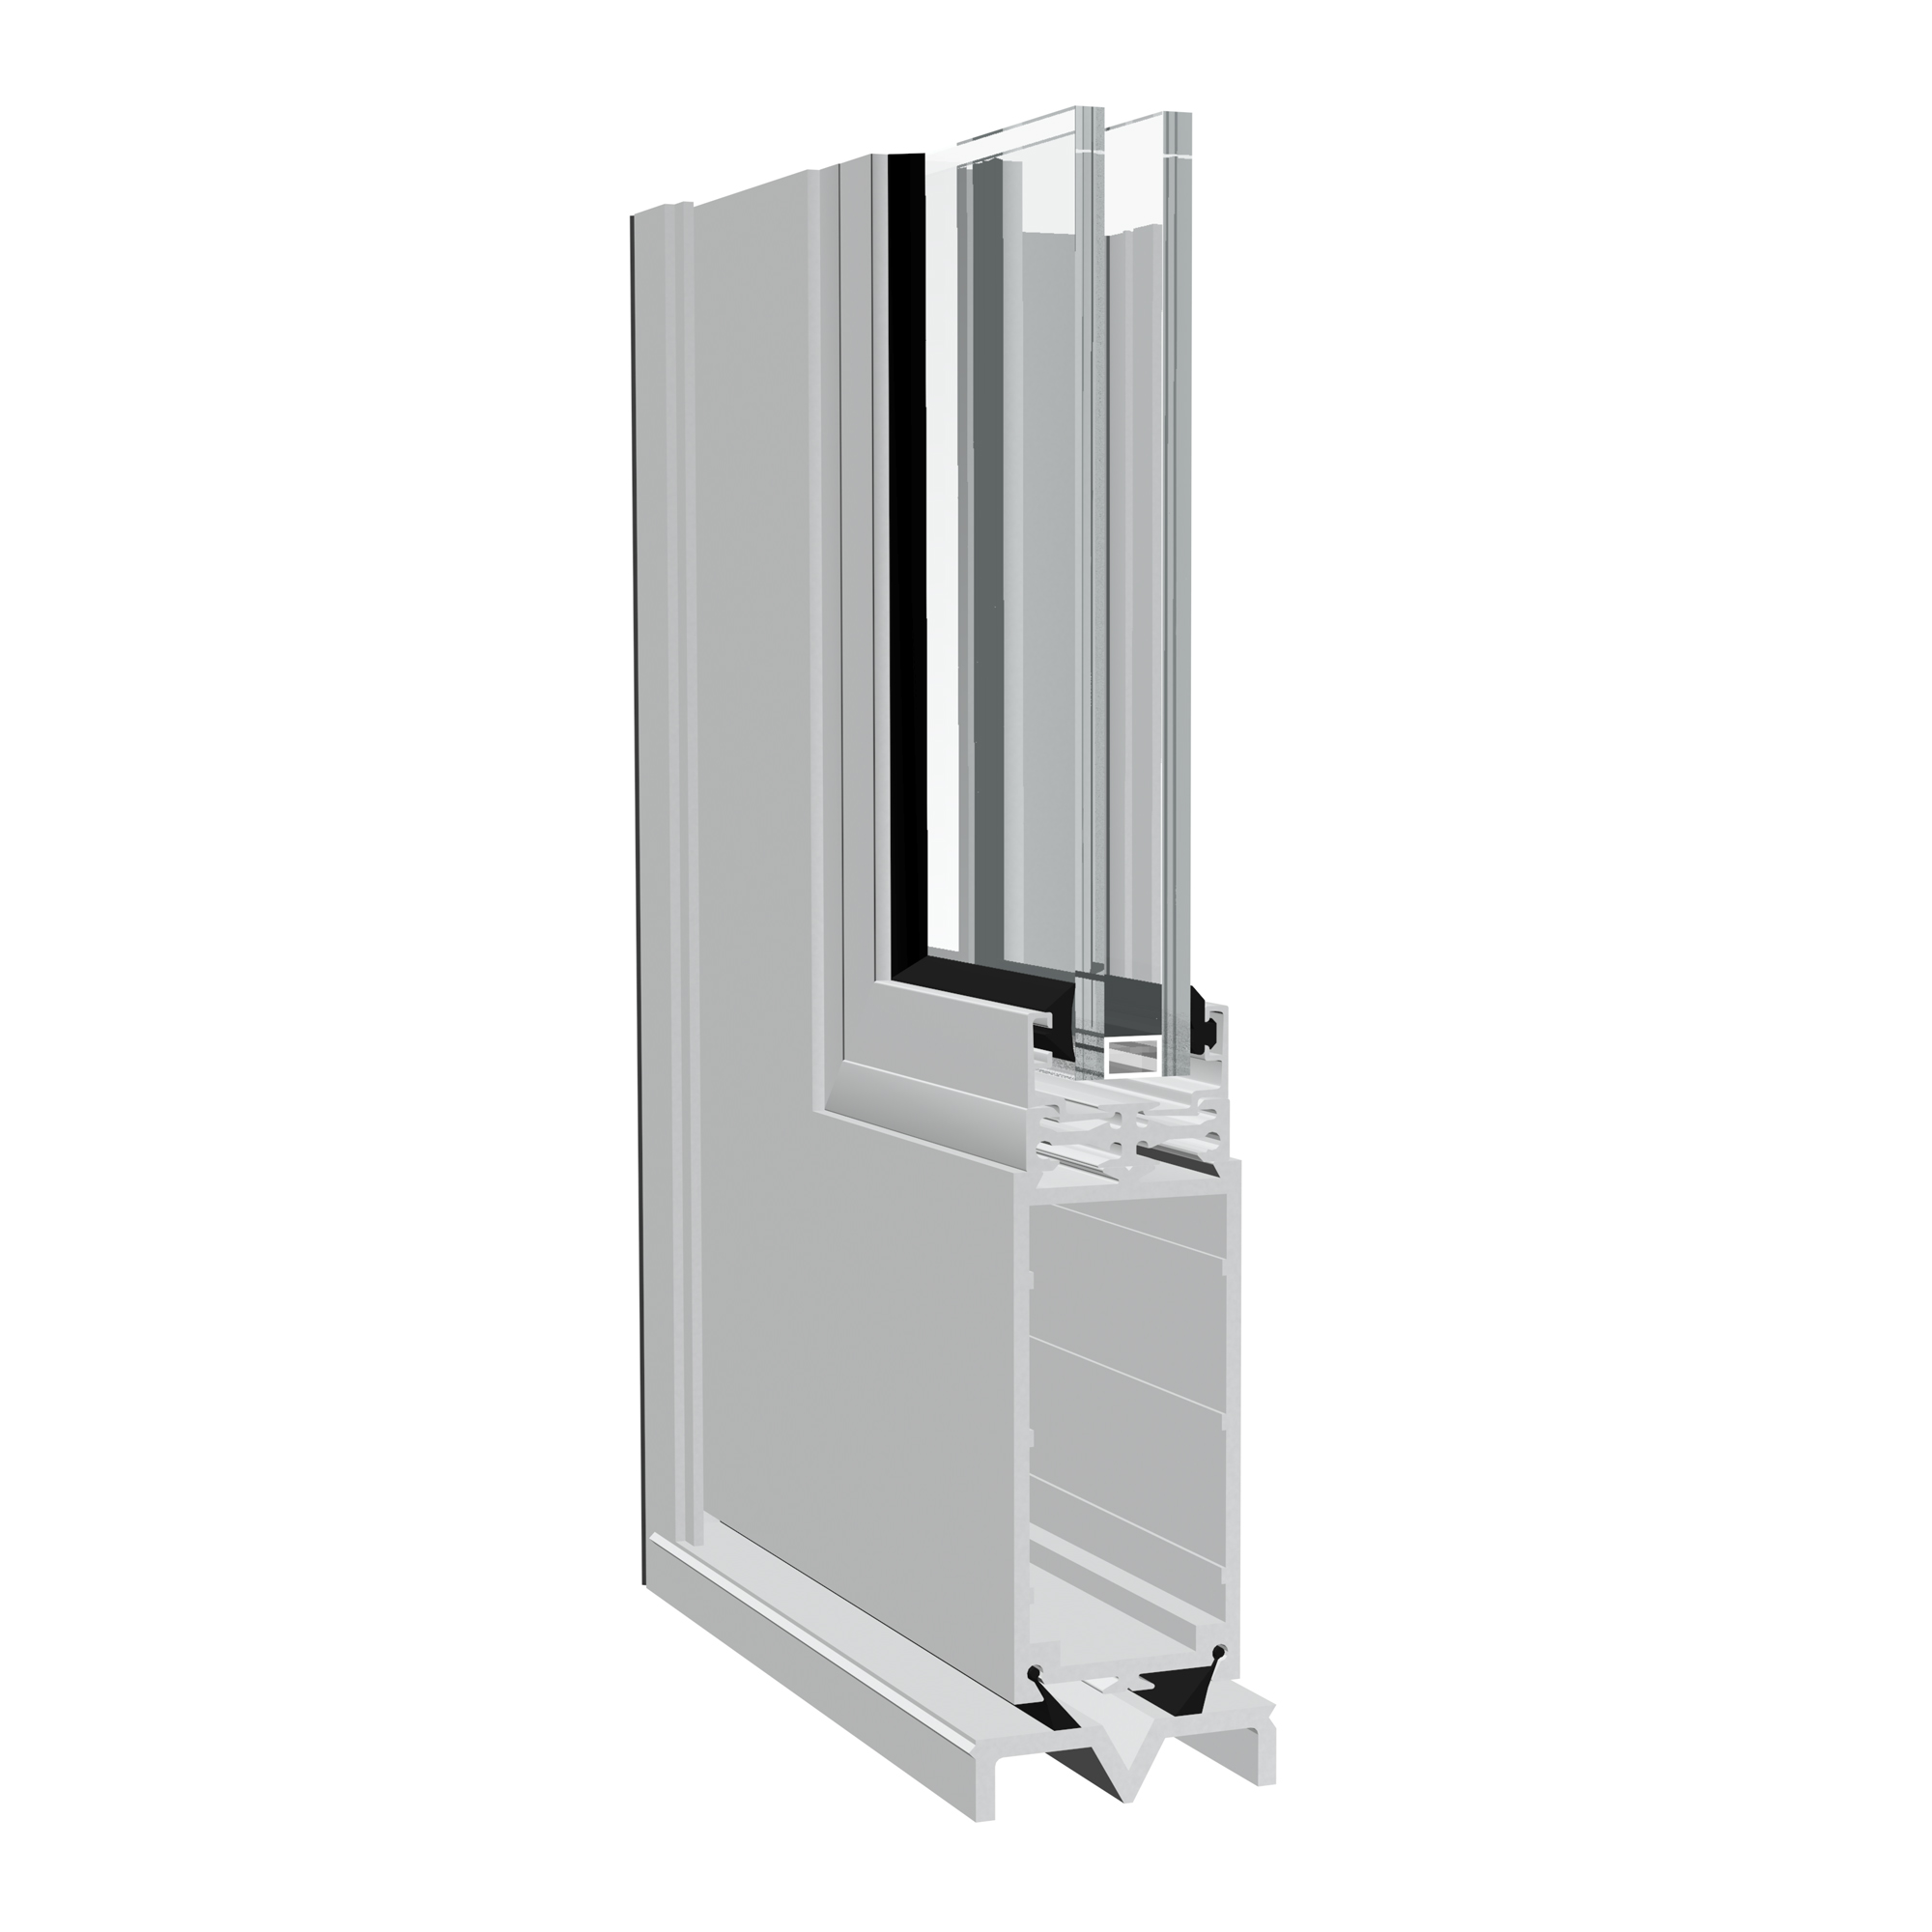 Hawk aluminium large format door from Sapa